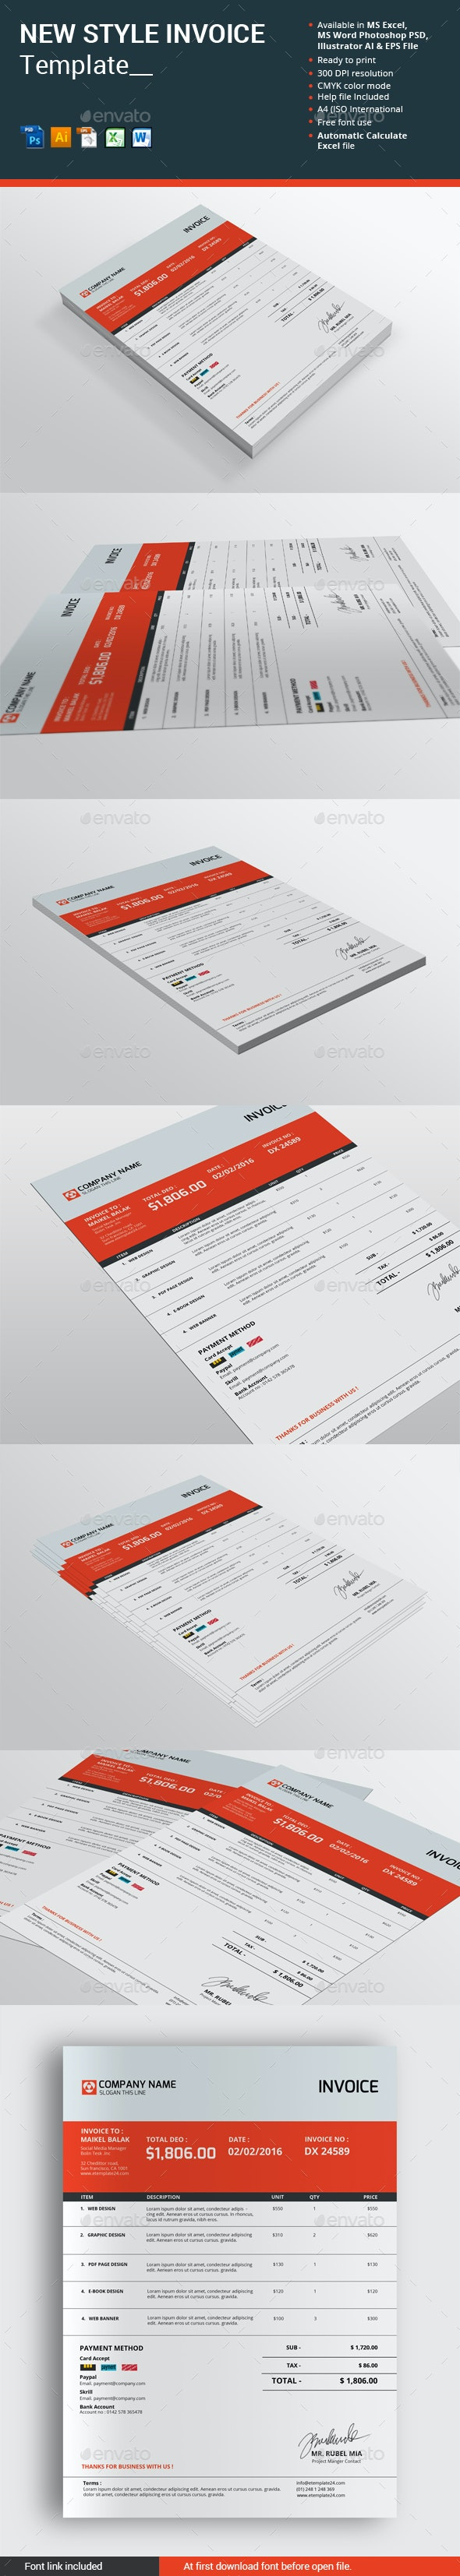 New Style Invoice Template - Proposals & Invoices Stationery